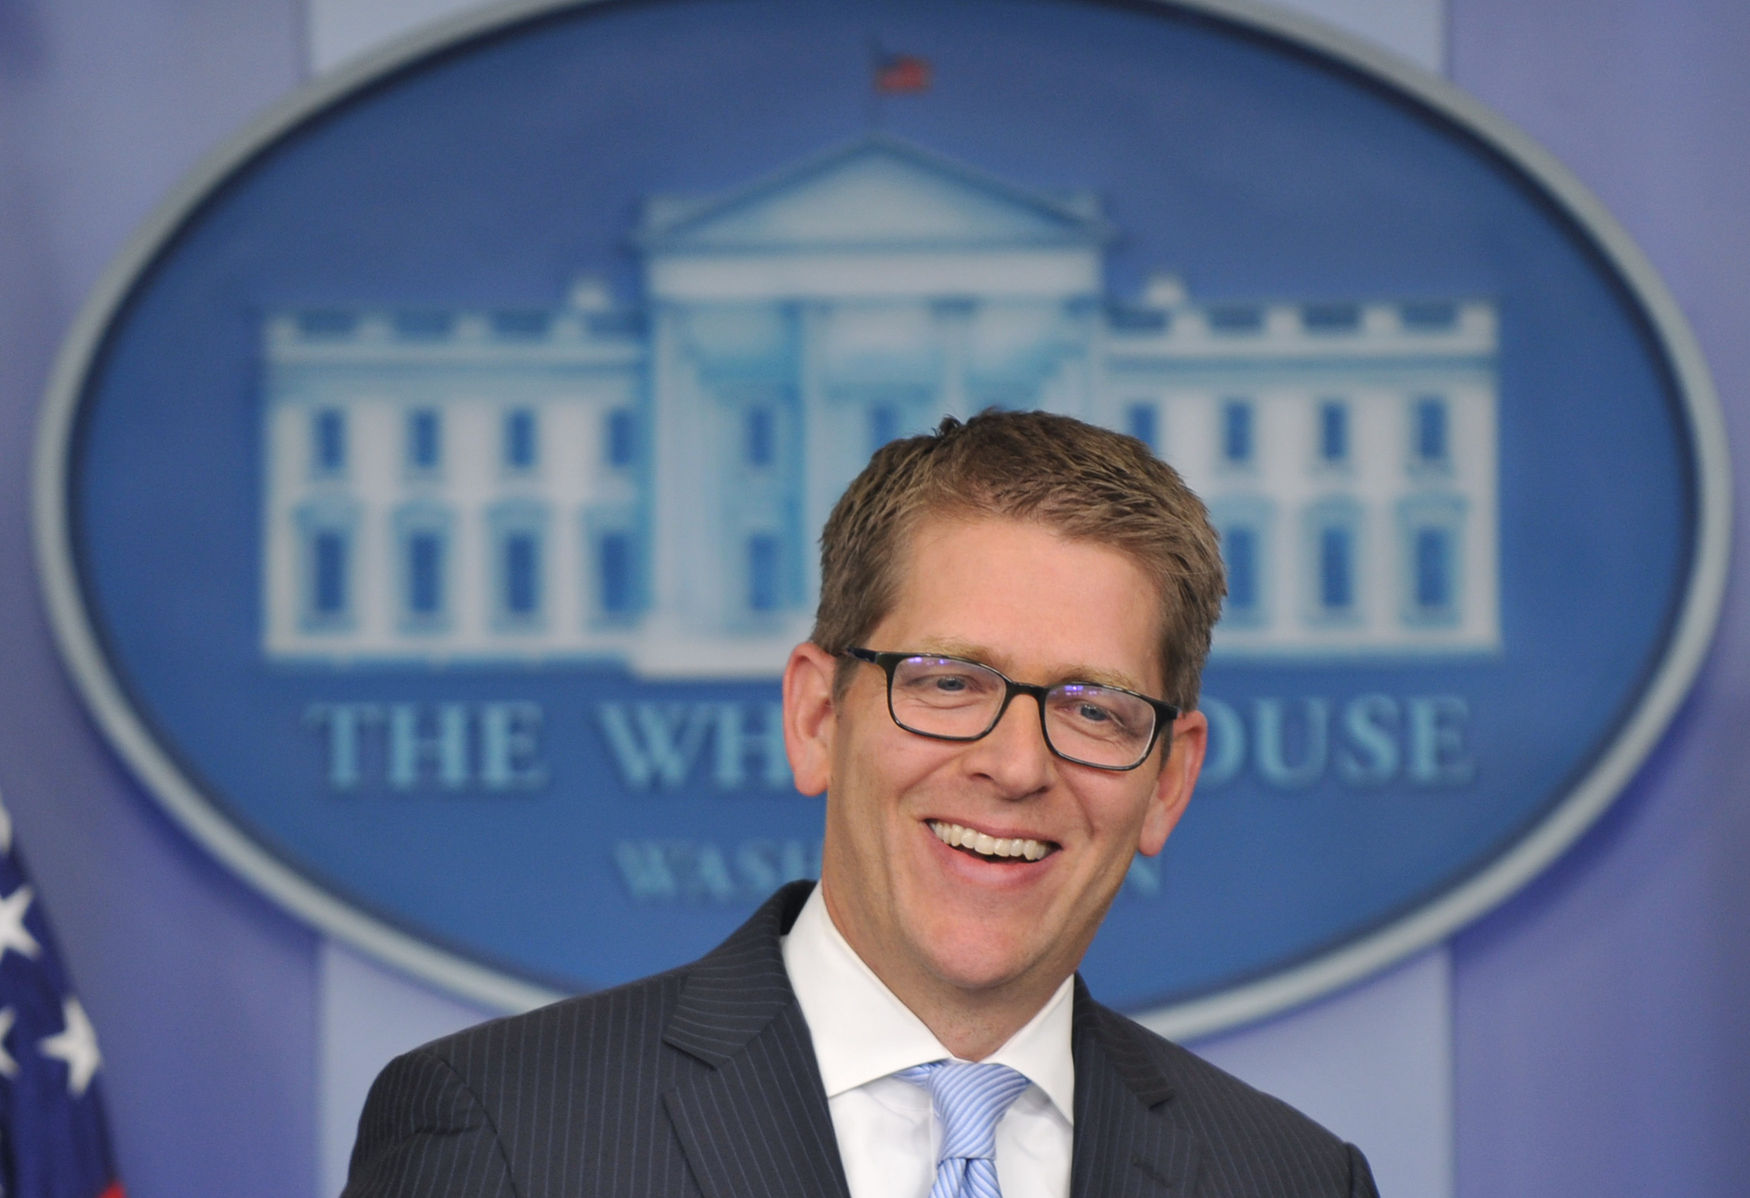 White House Press Secretary Jay Carney Hold the Daily Briefing in Washington